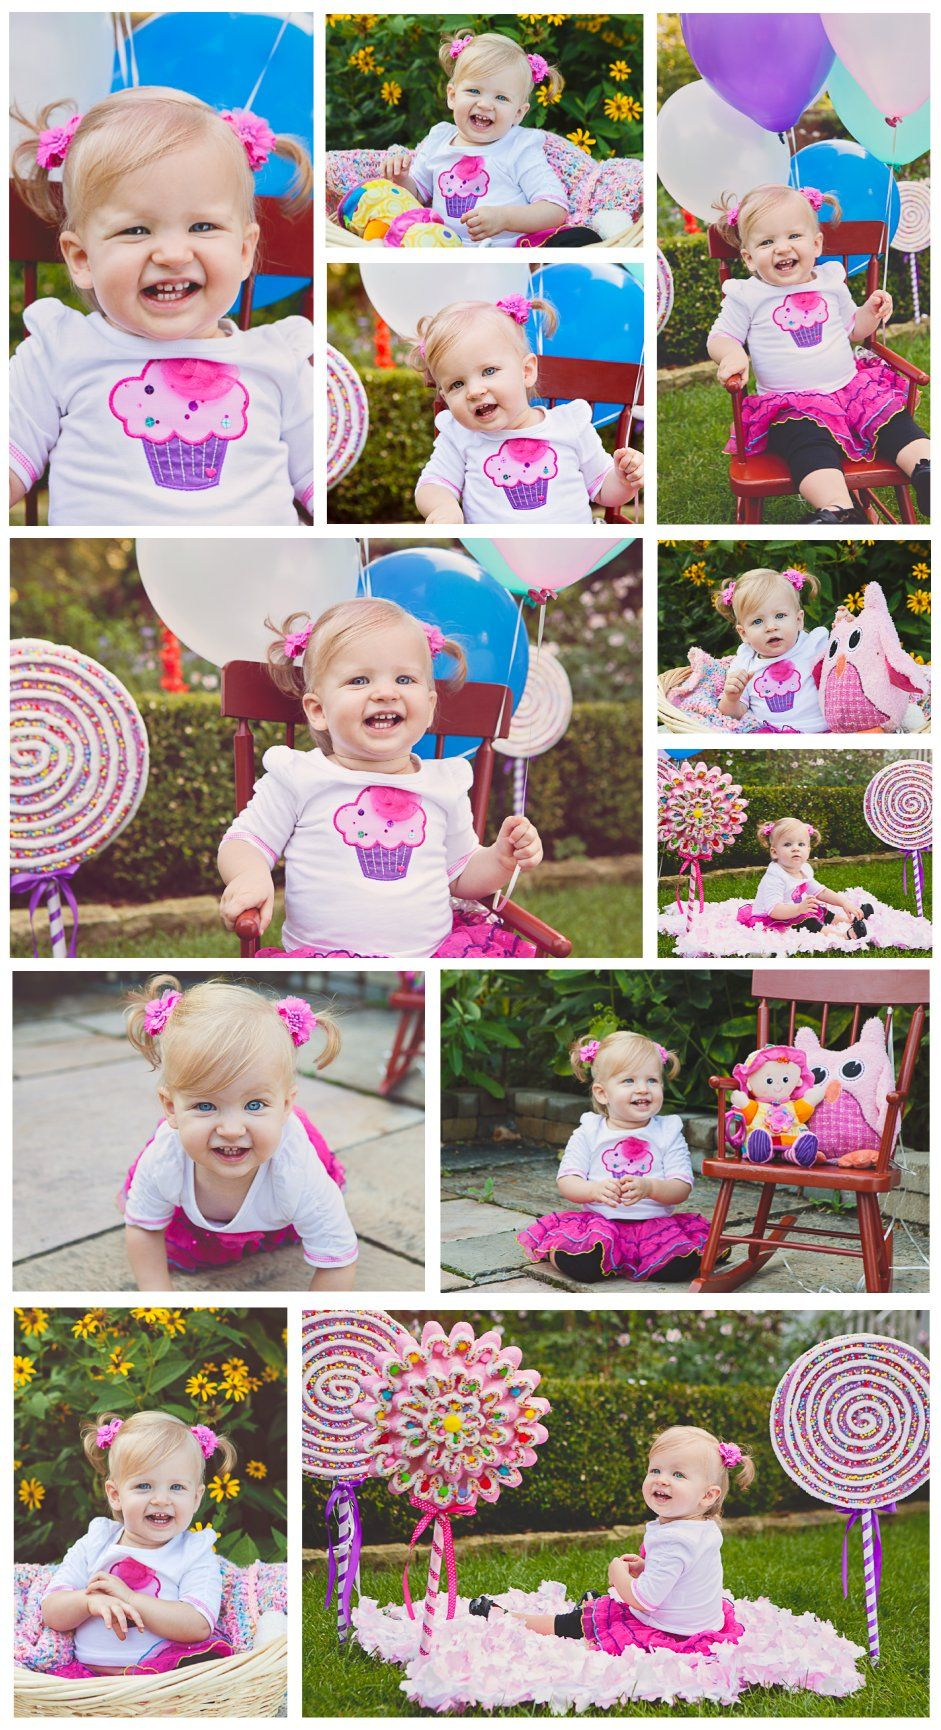 Baby Candyland themed photos - Memories Captured by Brenda